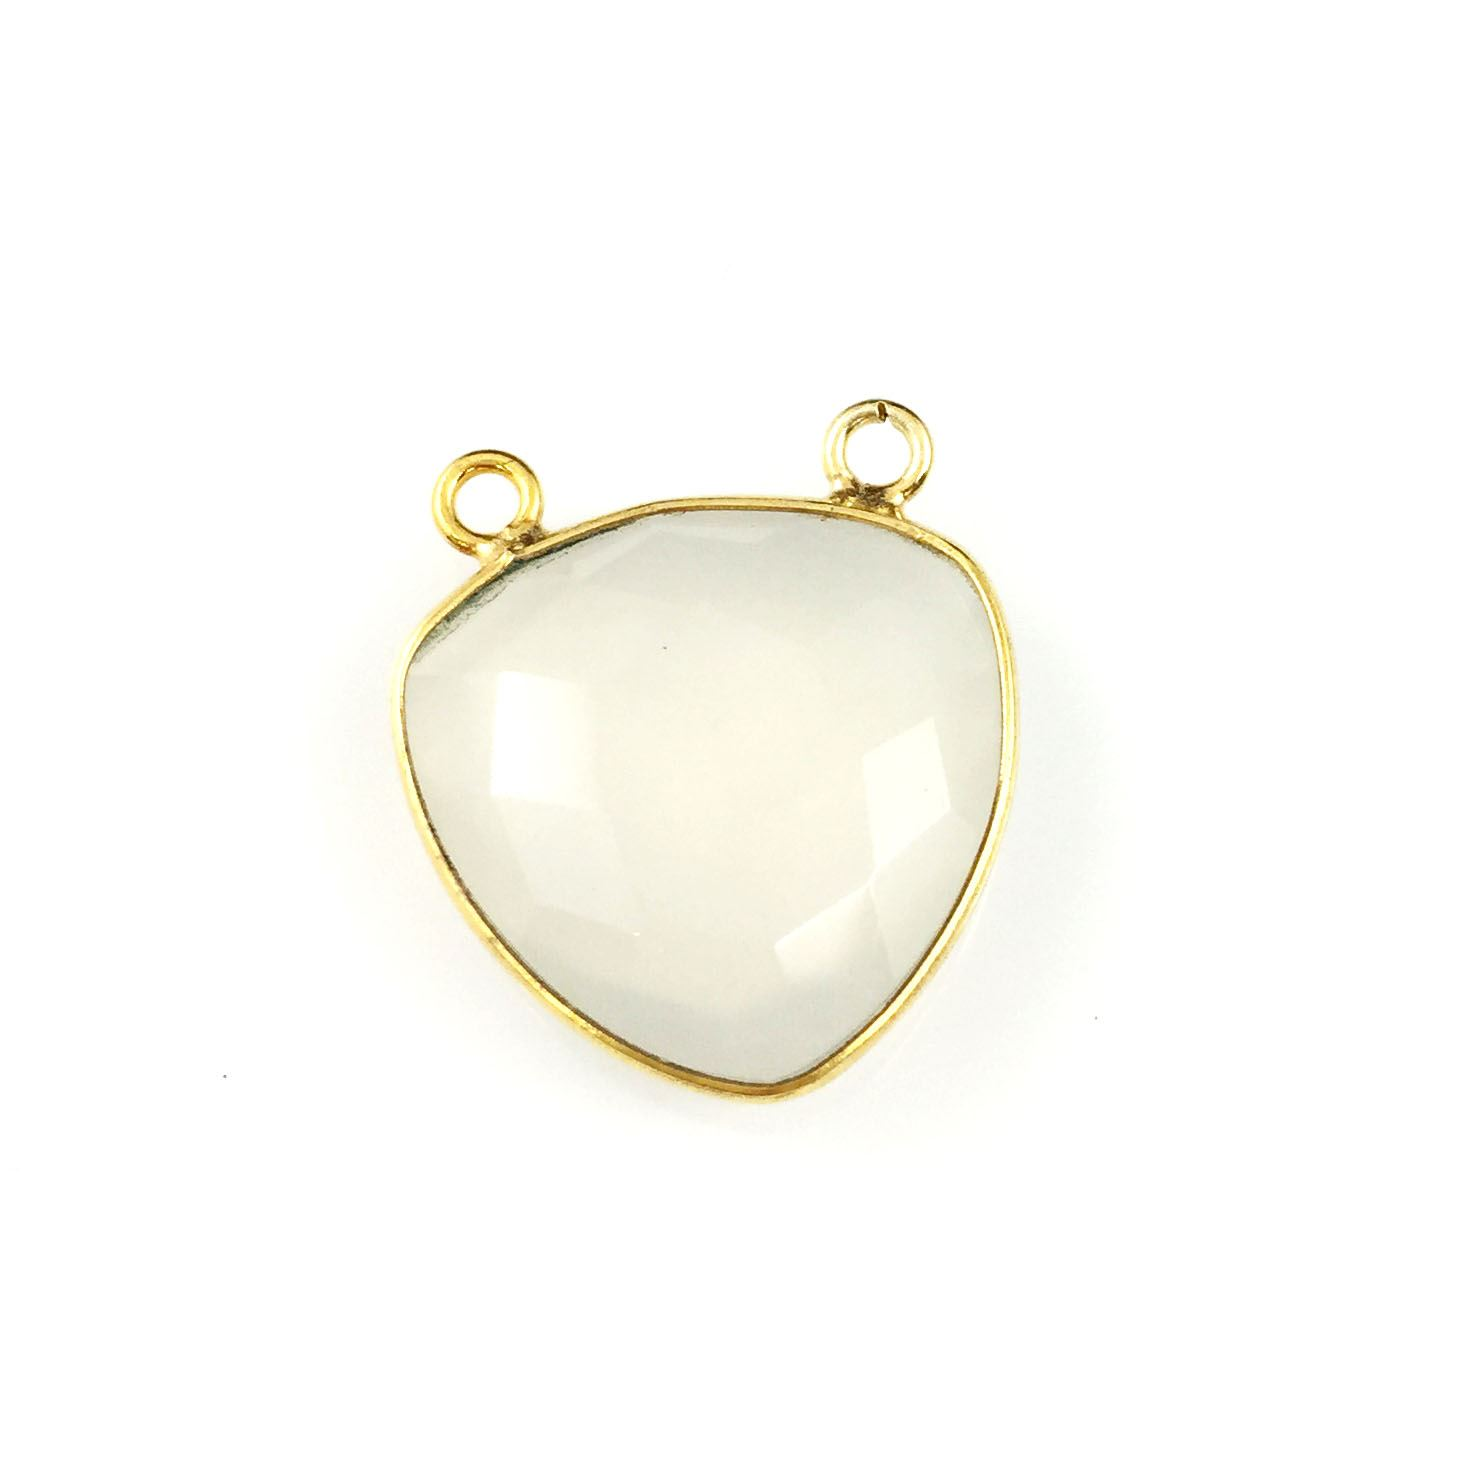 Bezel Gemstone Connector Pendant - White Chalcedony - Gold plated Sterling Silver - Large Trillion Shaped Faceted - 18 mm - 1 piece